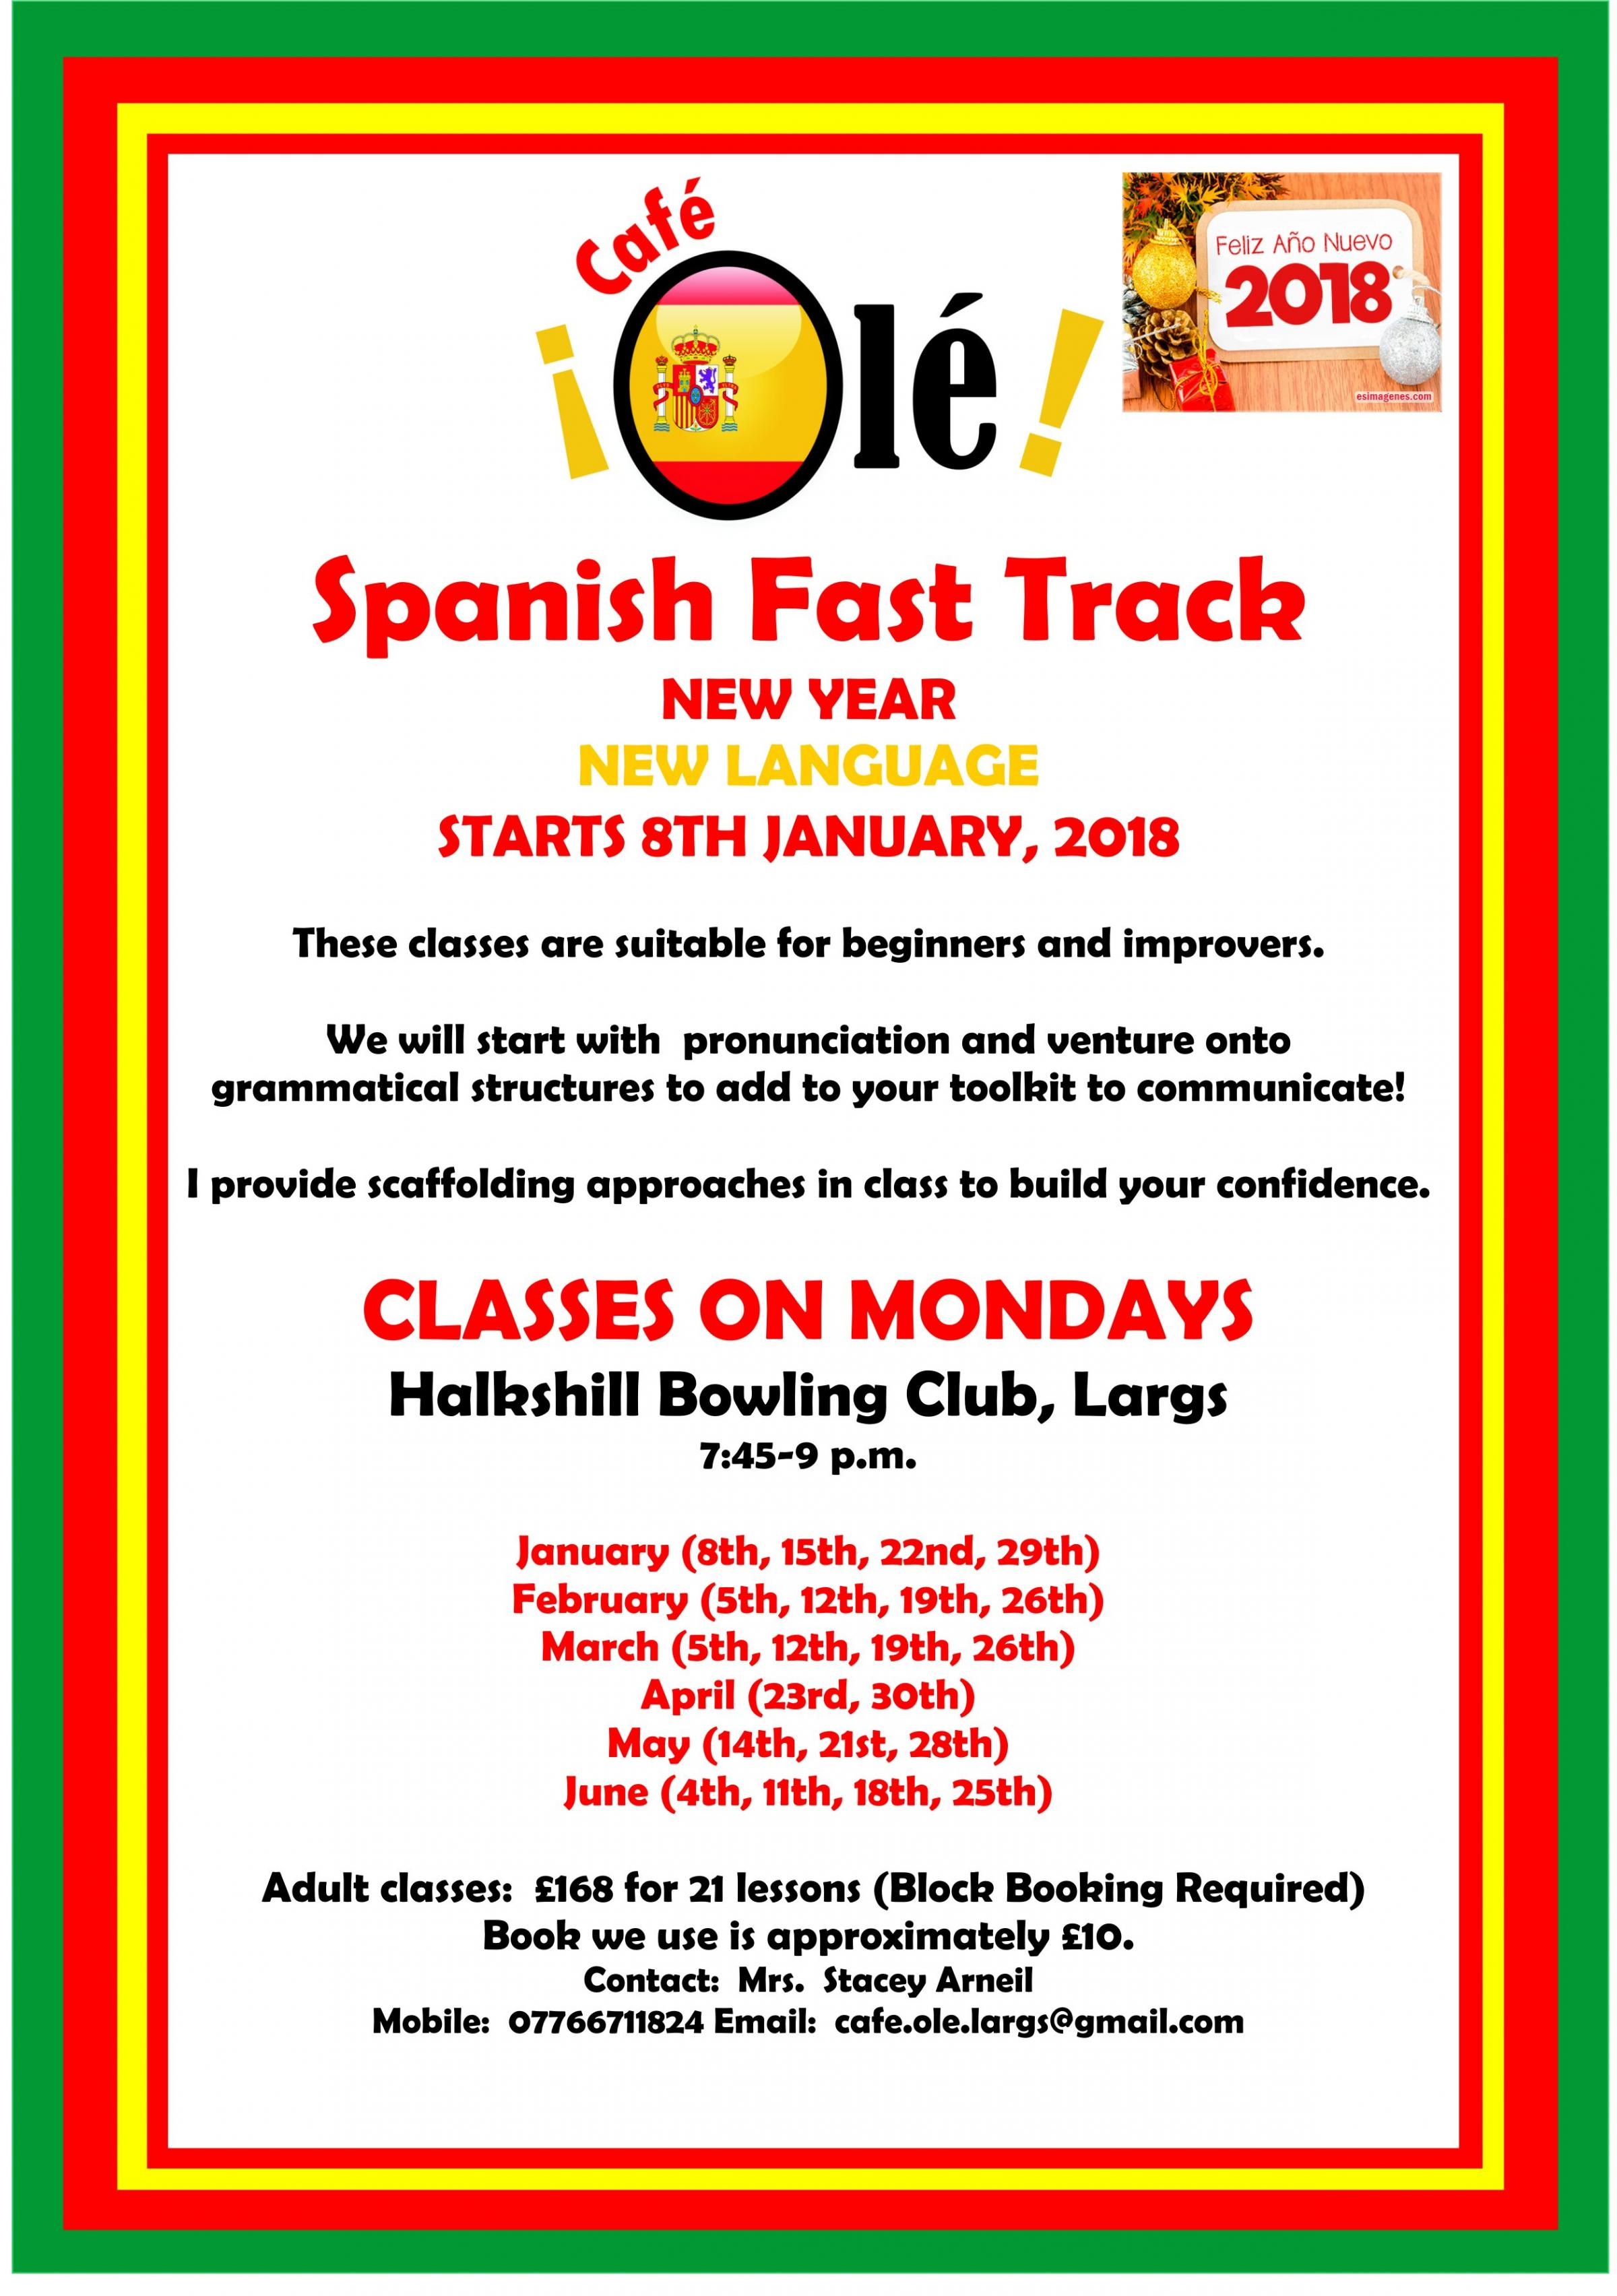 Spanish Fast Track for Beginners & Improvers